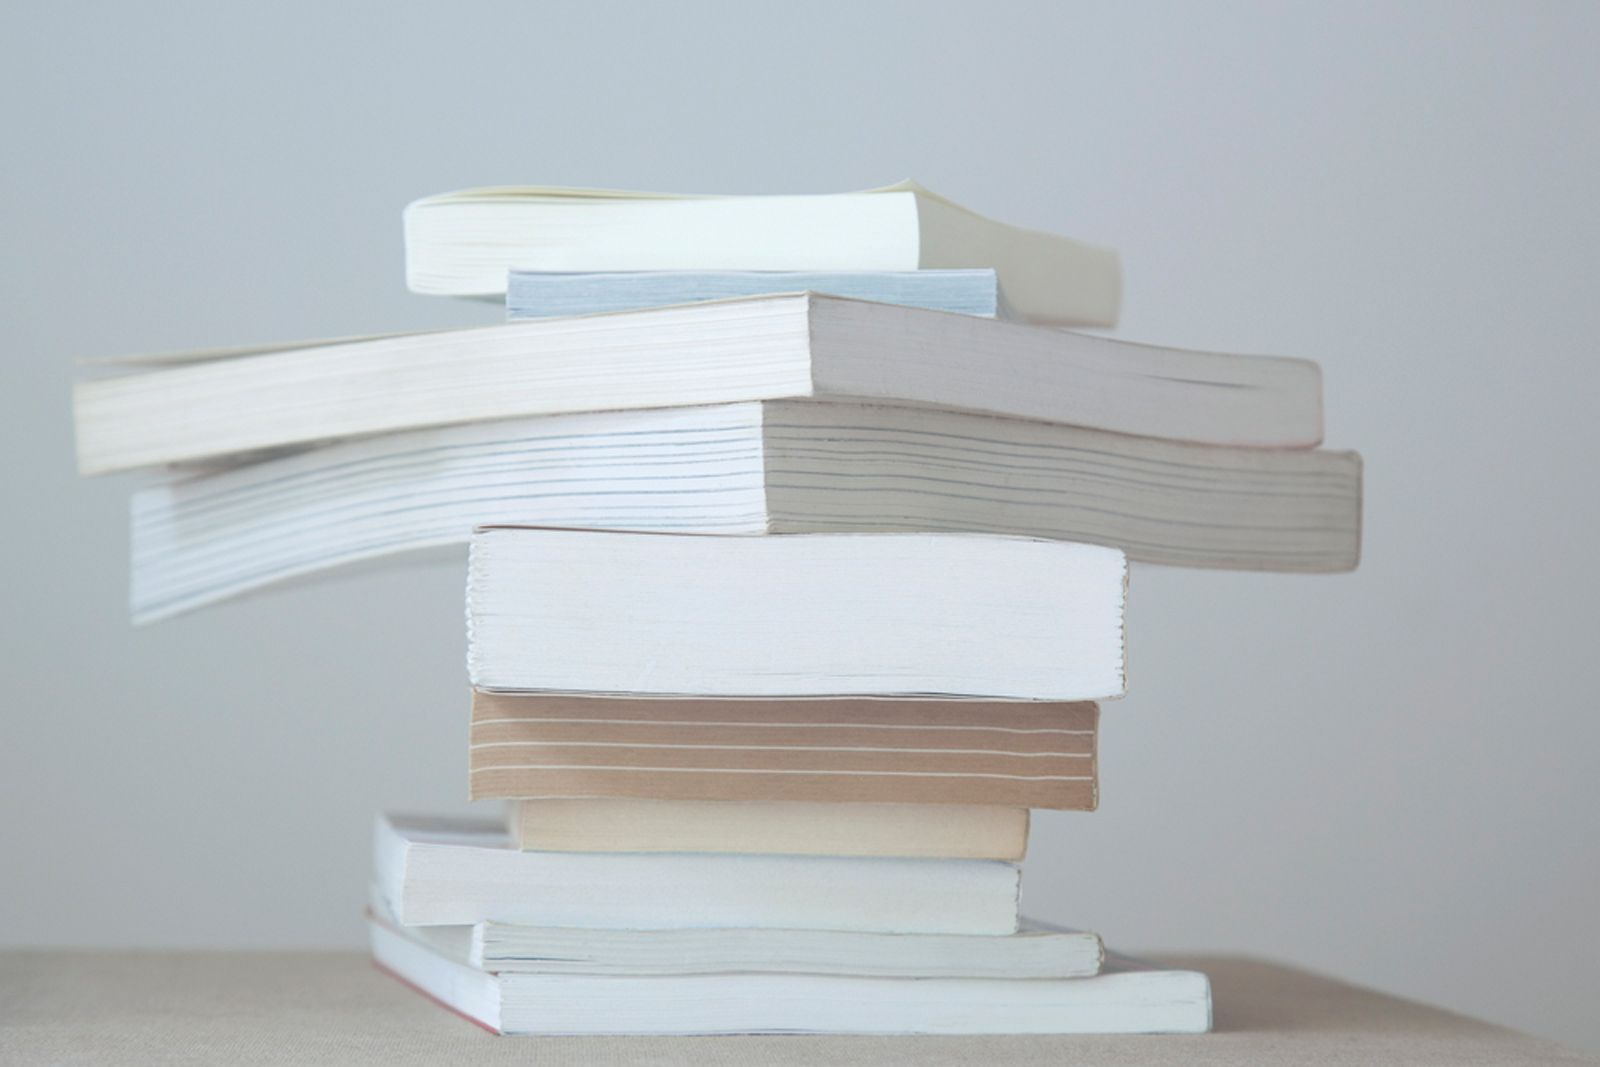 Untitled 22, from the series Paperbacks, 2009. Archival pigment print, 16 x 22 inches.